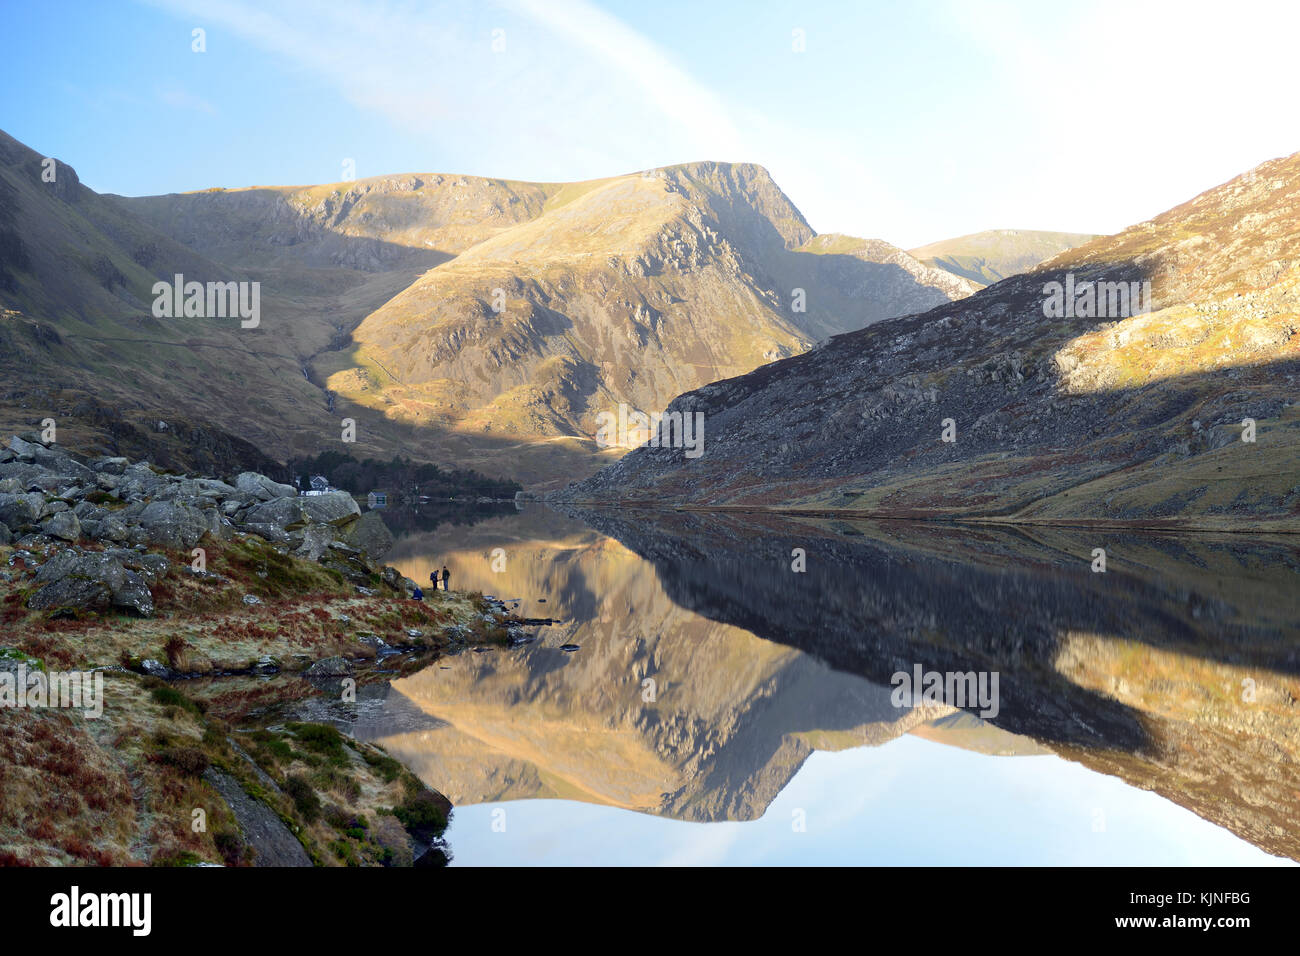 Lake Ogwen is located in Snowdonia between the Carneddau and the Glyderau mountain ranges. It is a visually stunning Stock Photo